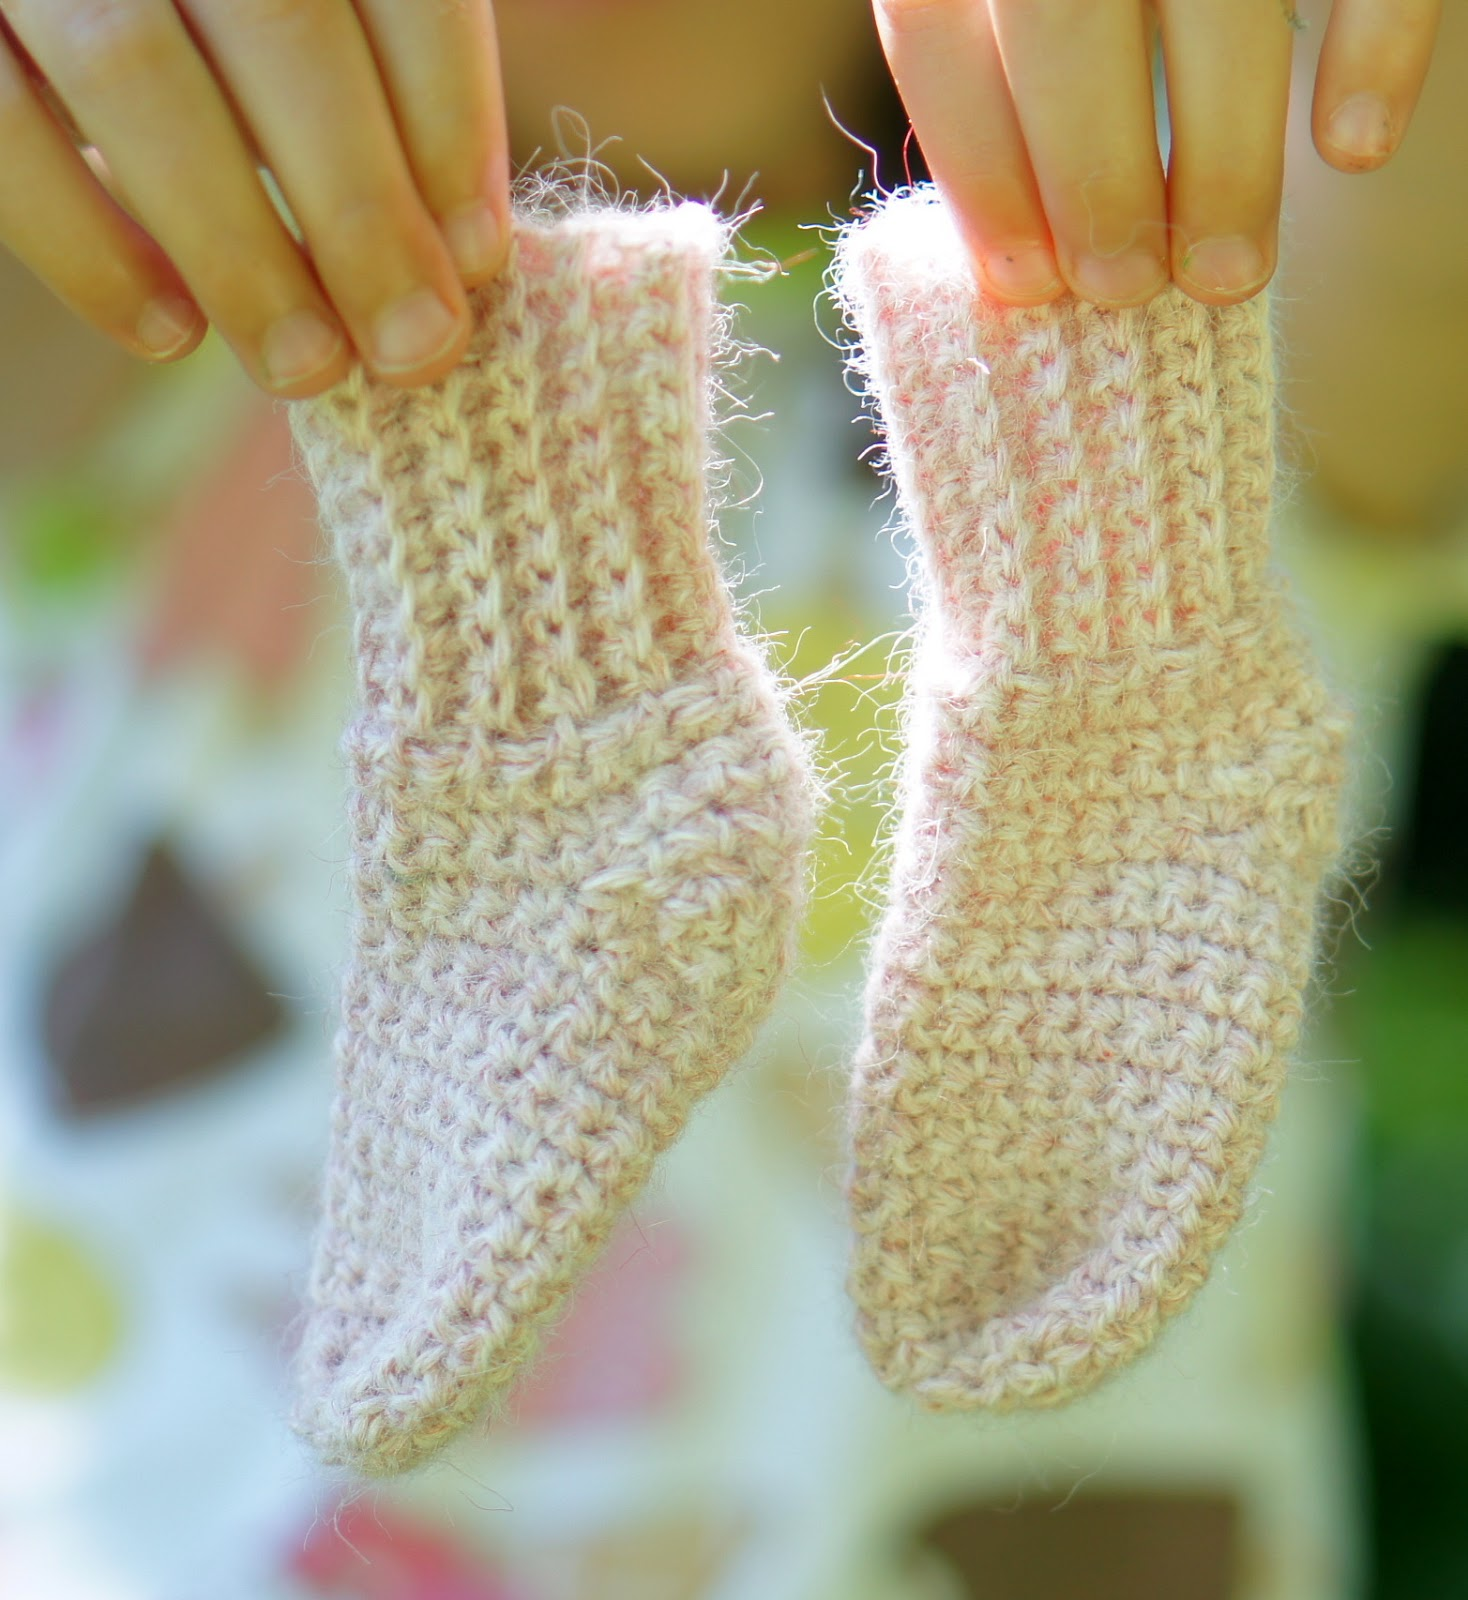 Ball Hank n Skein: Newborn Baby Sock Crochet Pattern